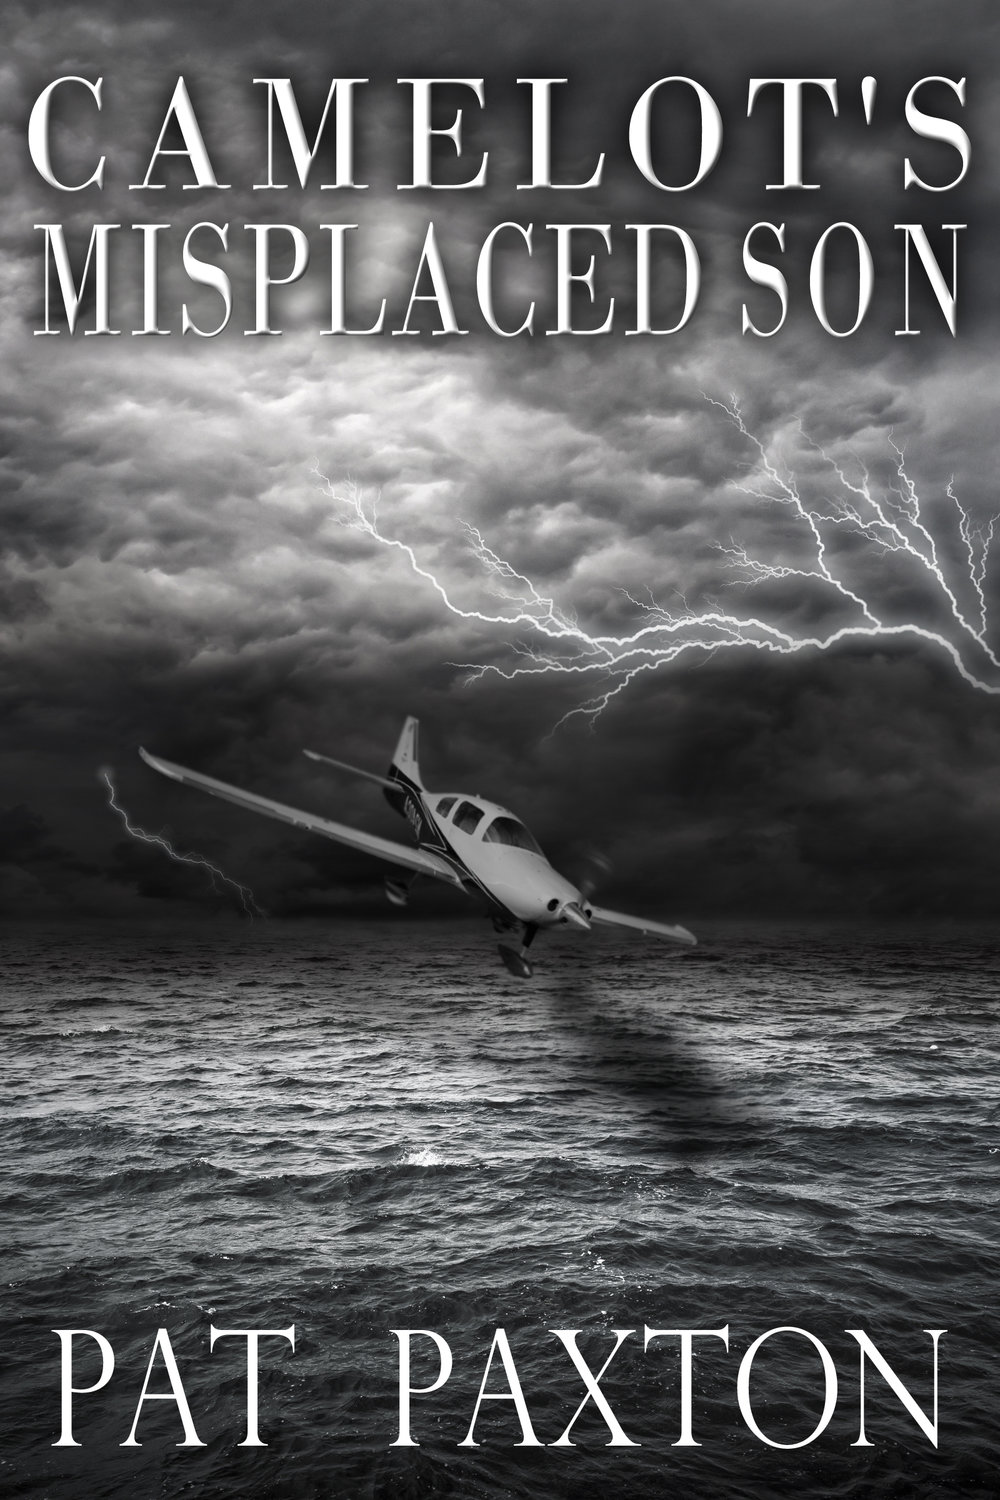 Copy of Camelot's Misplaced Son